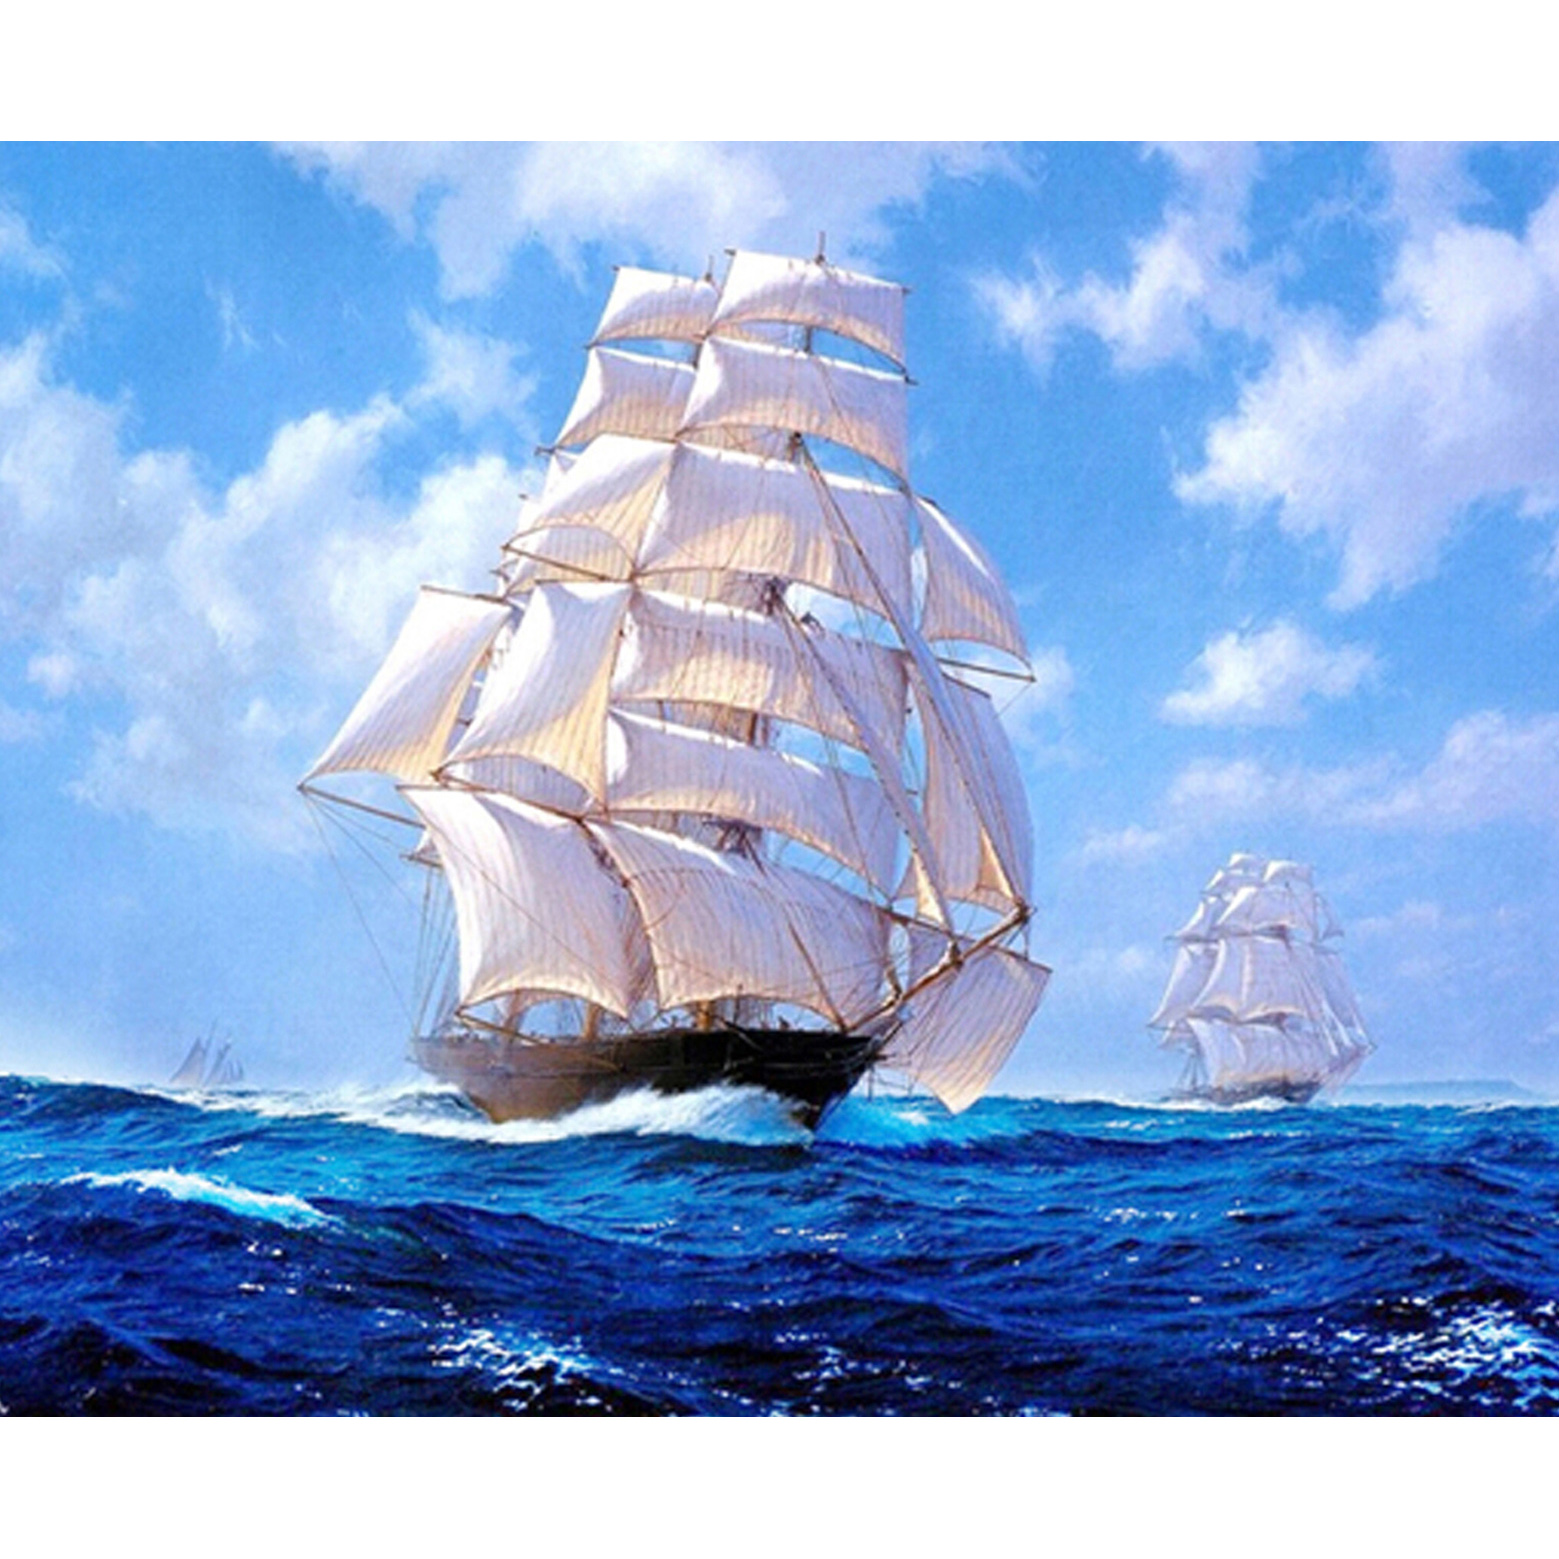 Western Style home decor 5D square Diy Diamond Painting Embroidery gift sailing ship living room sticker 55X45CM LLLD266(China (Mainland))